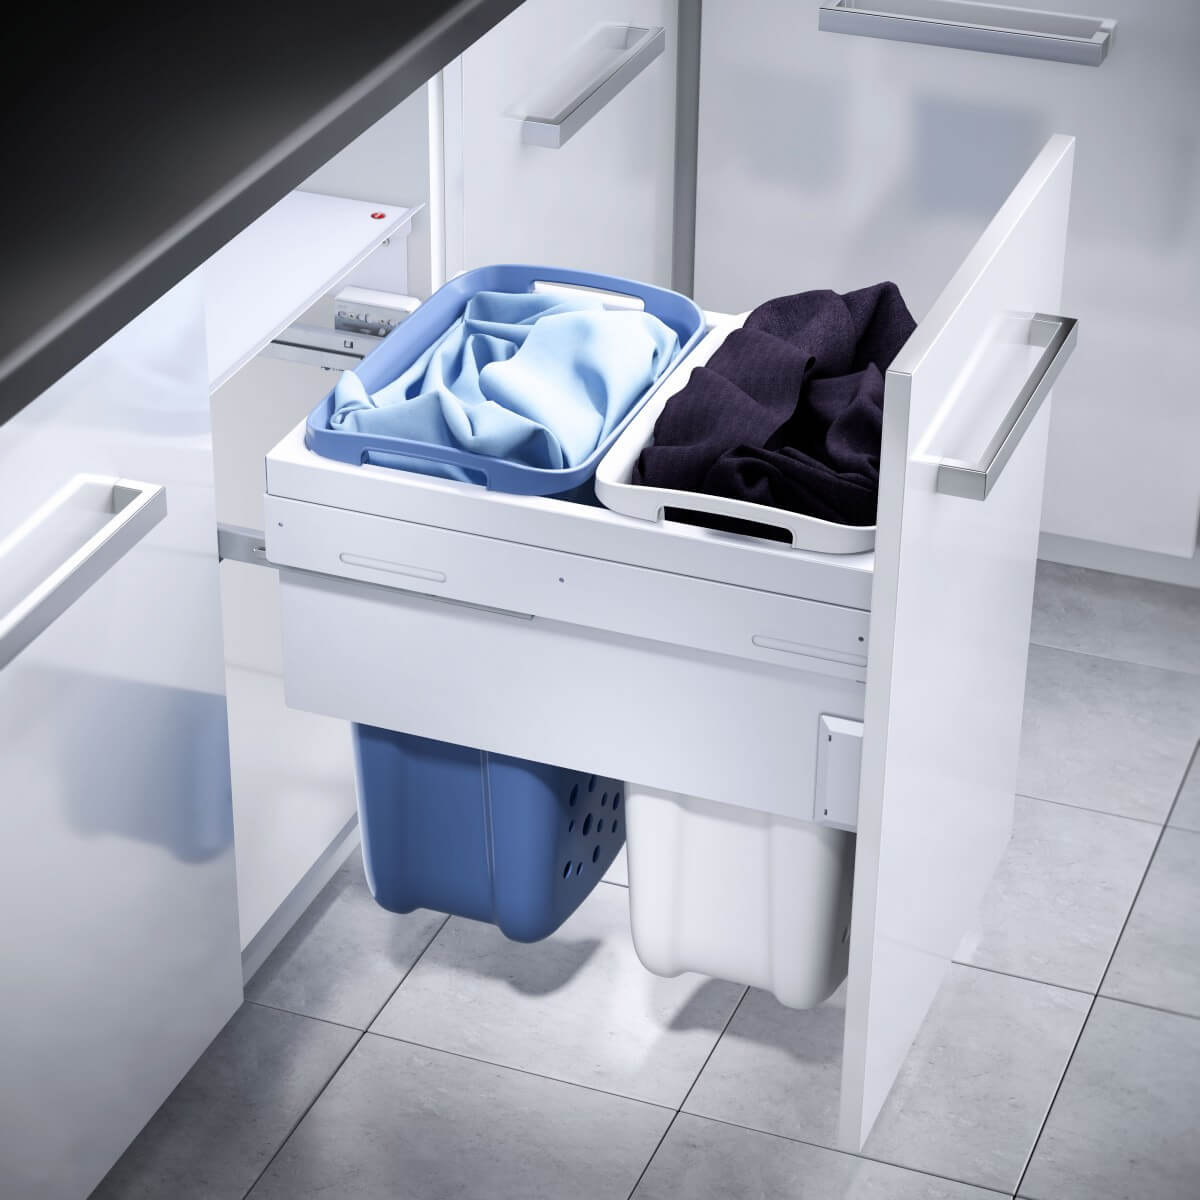 Hailo Laundry Carrier 500